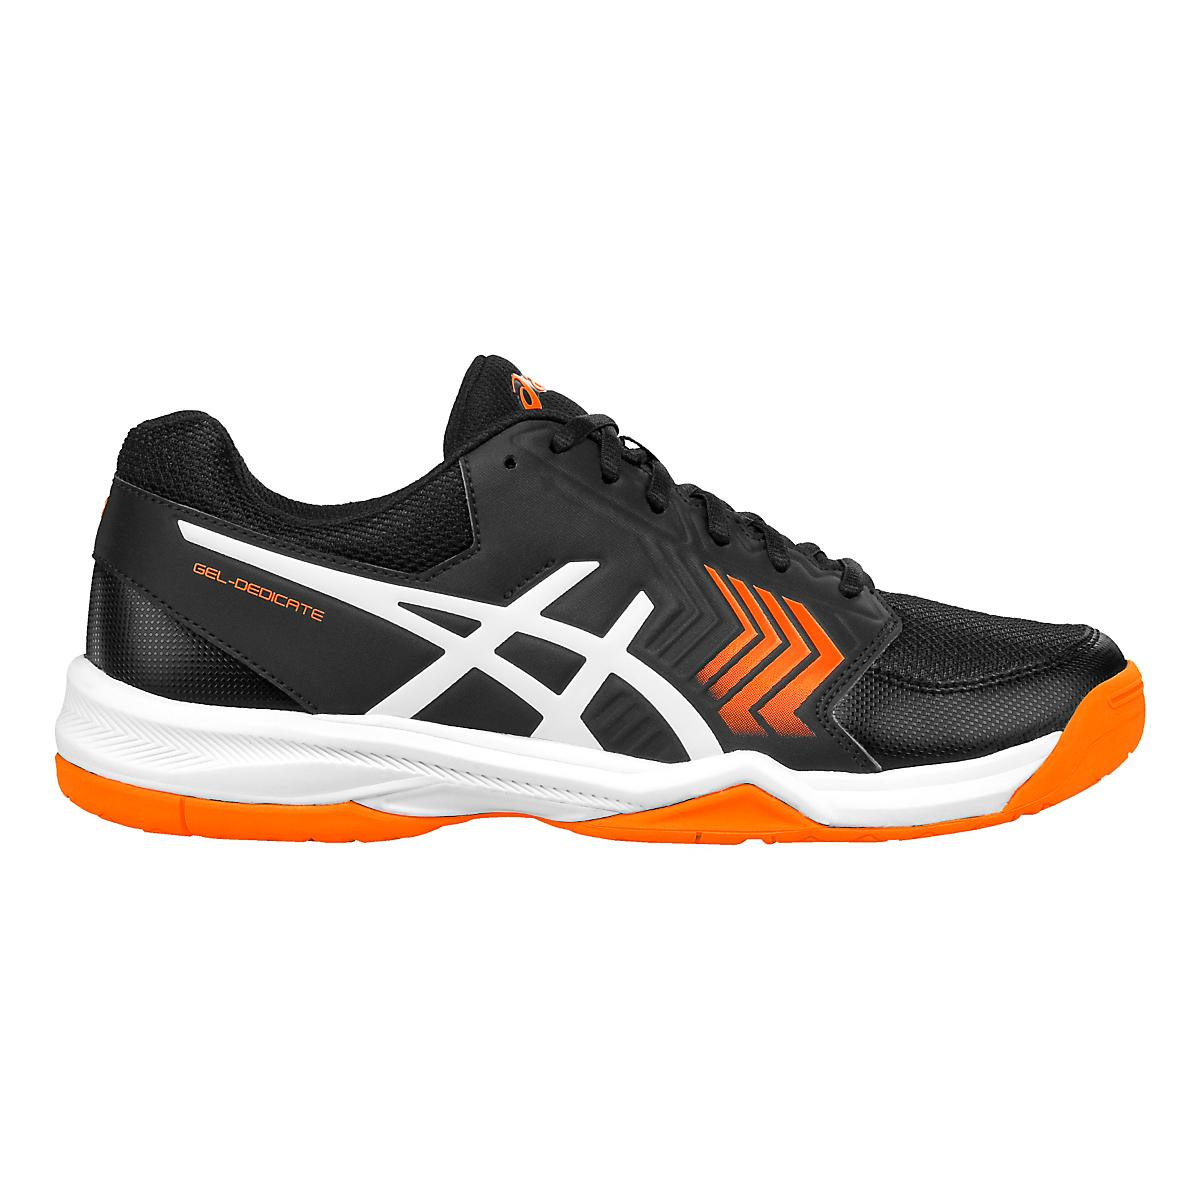 cheaper 6b468 de581 Mens ASICS Gel-Dedicate 5 Court Shoe at Road Runner Sports